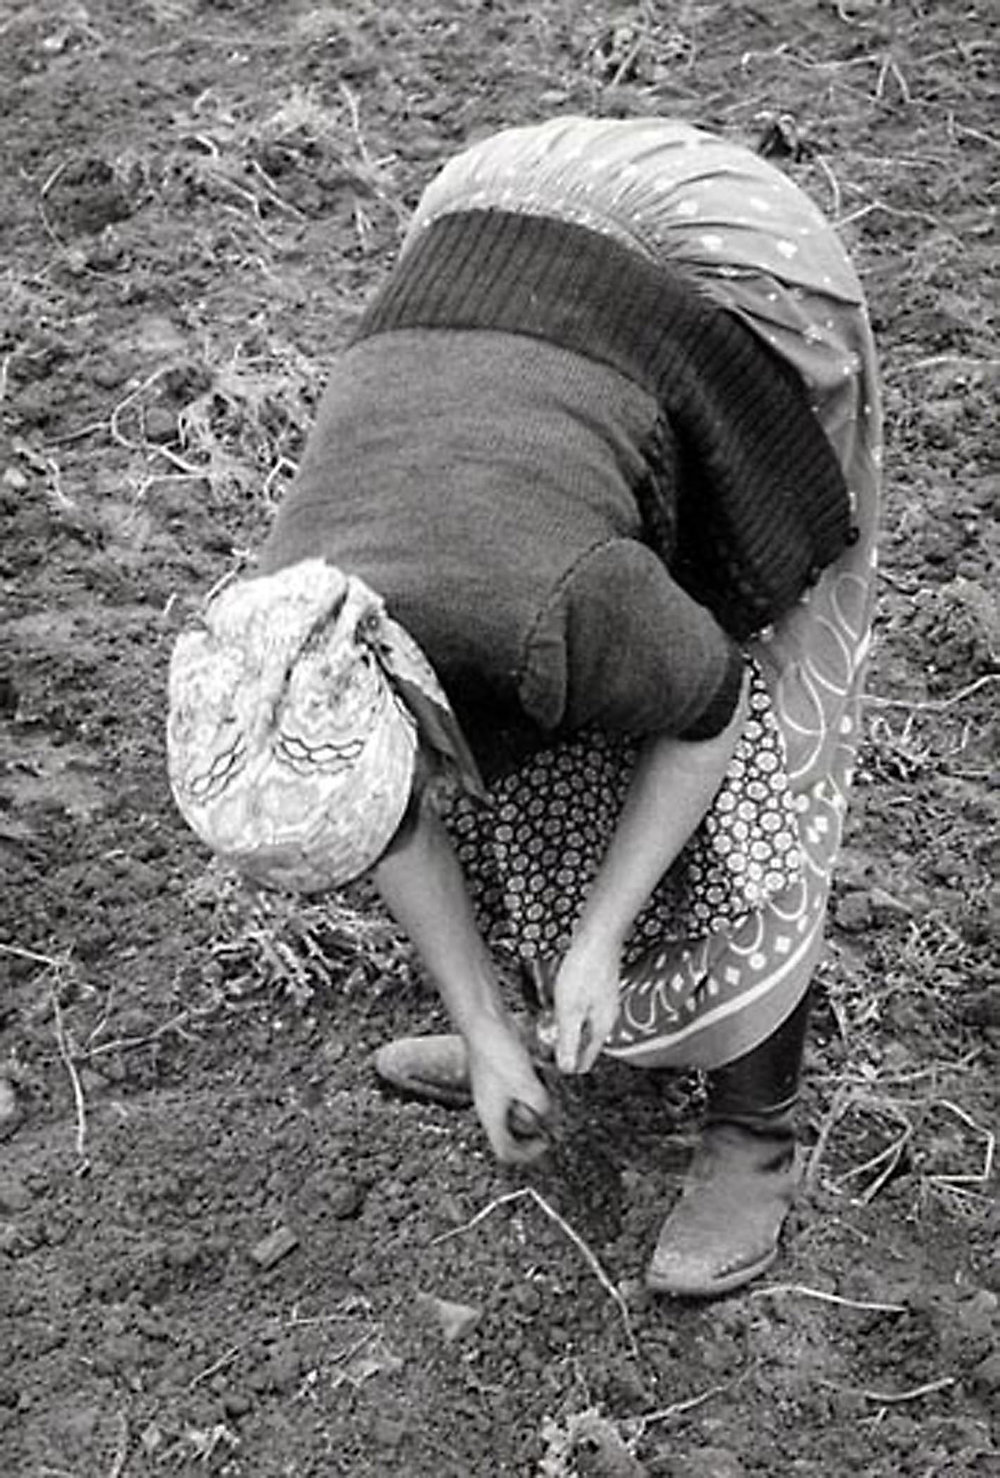 HANNON_potato_picker_(germany)_1957_11x14_high.jpg